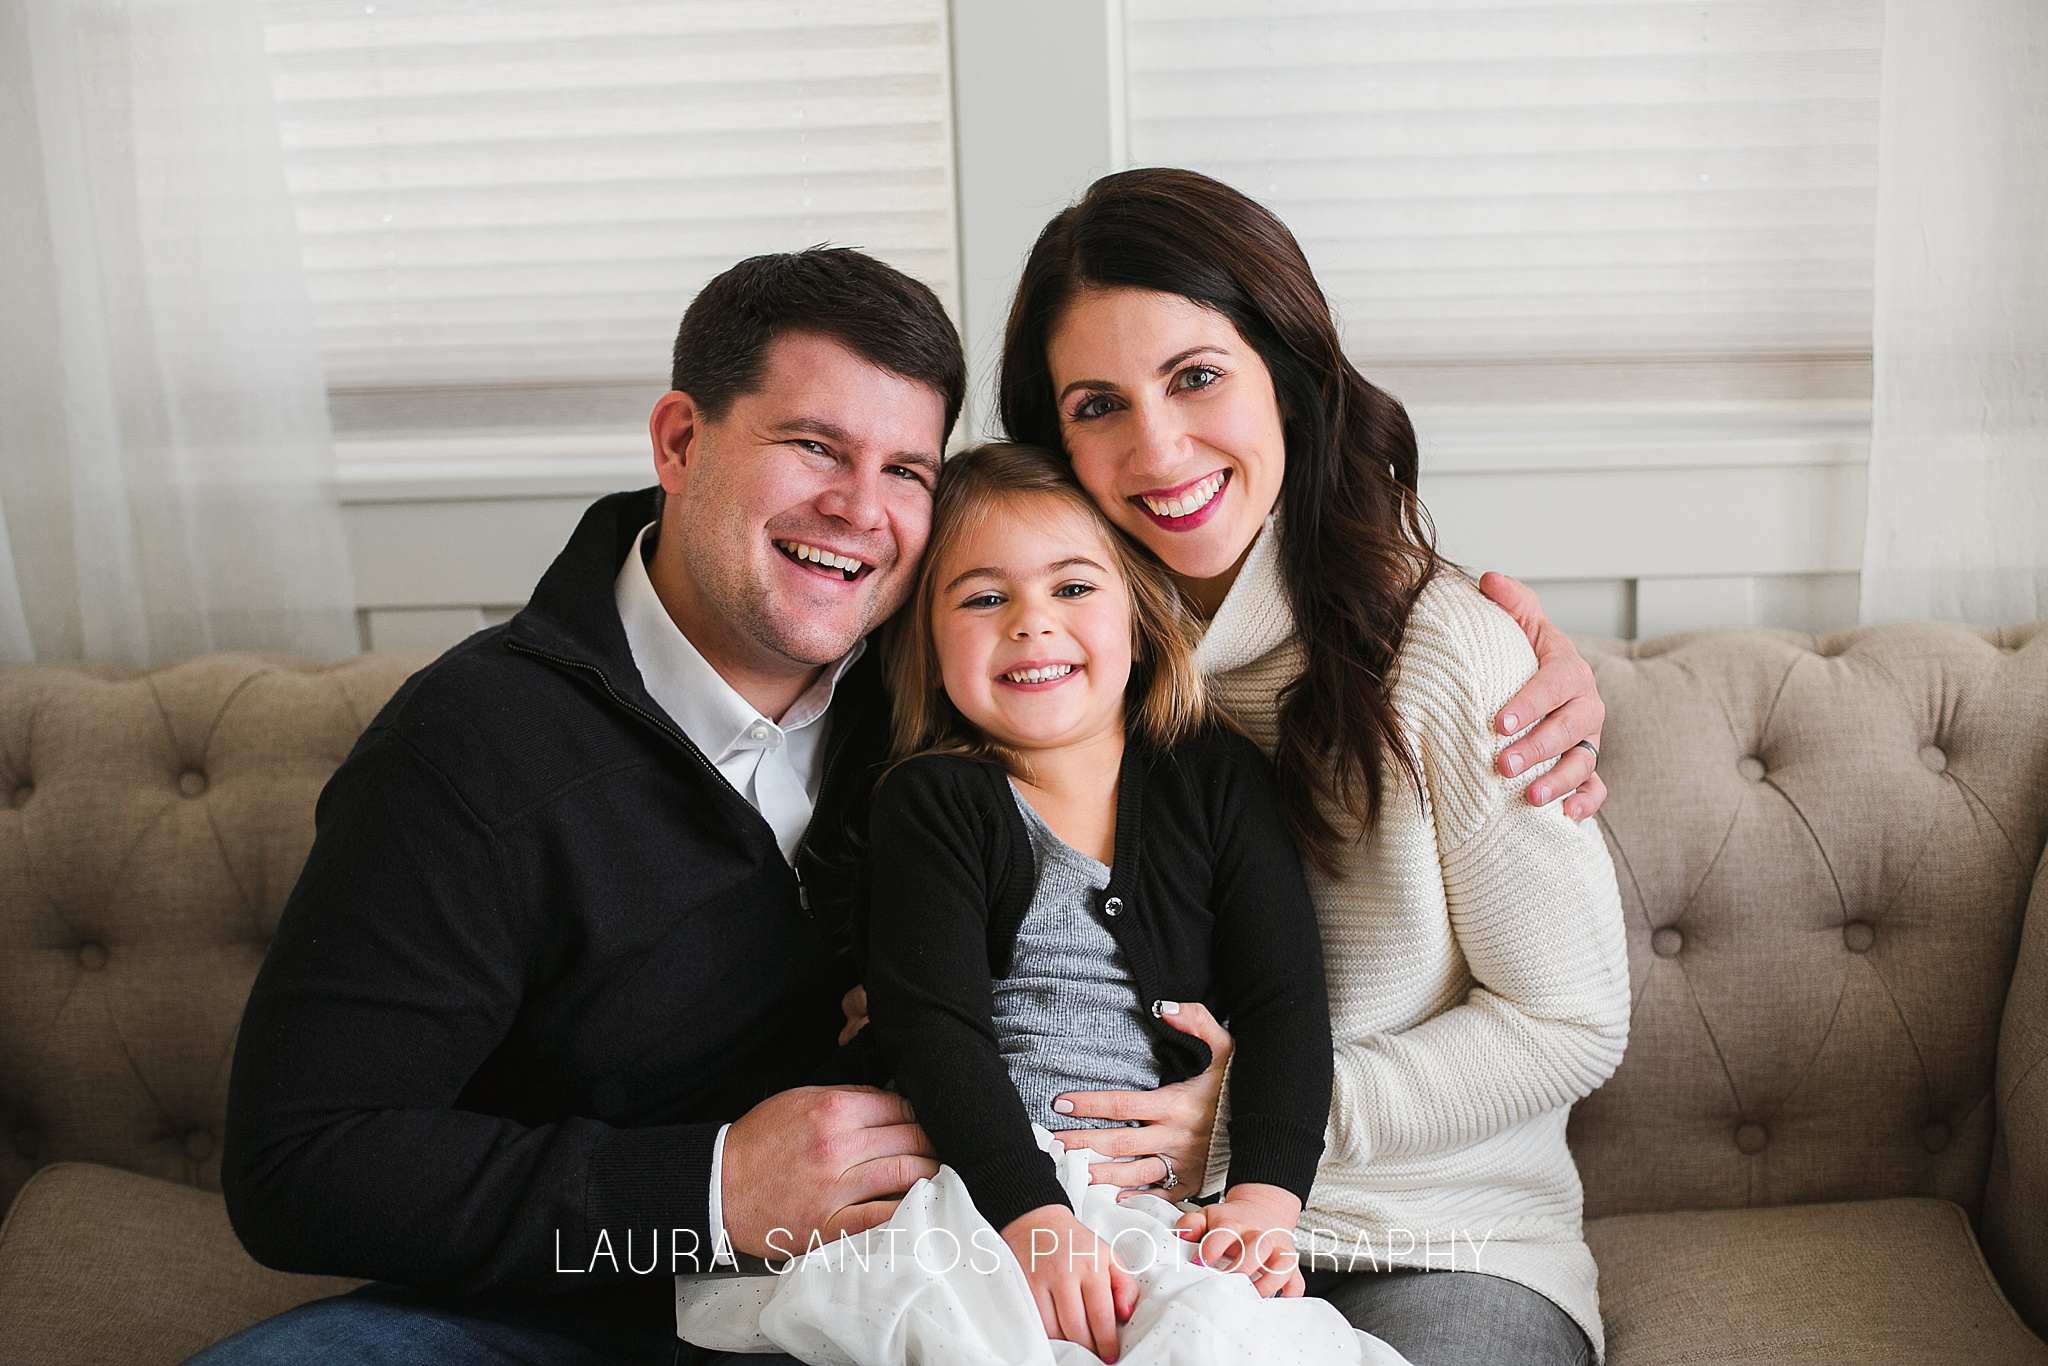 Laura Santos Photography Portland Oregon Family Photographer_0769.jpg